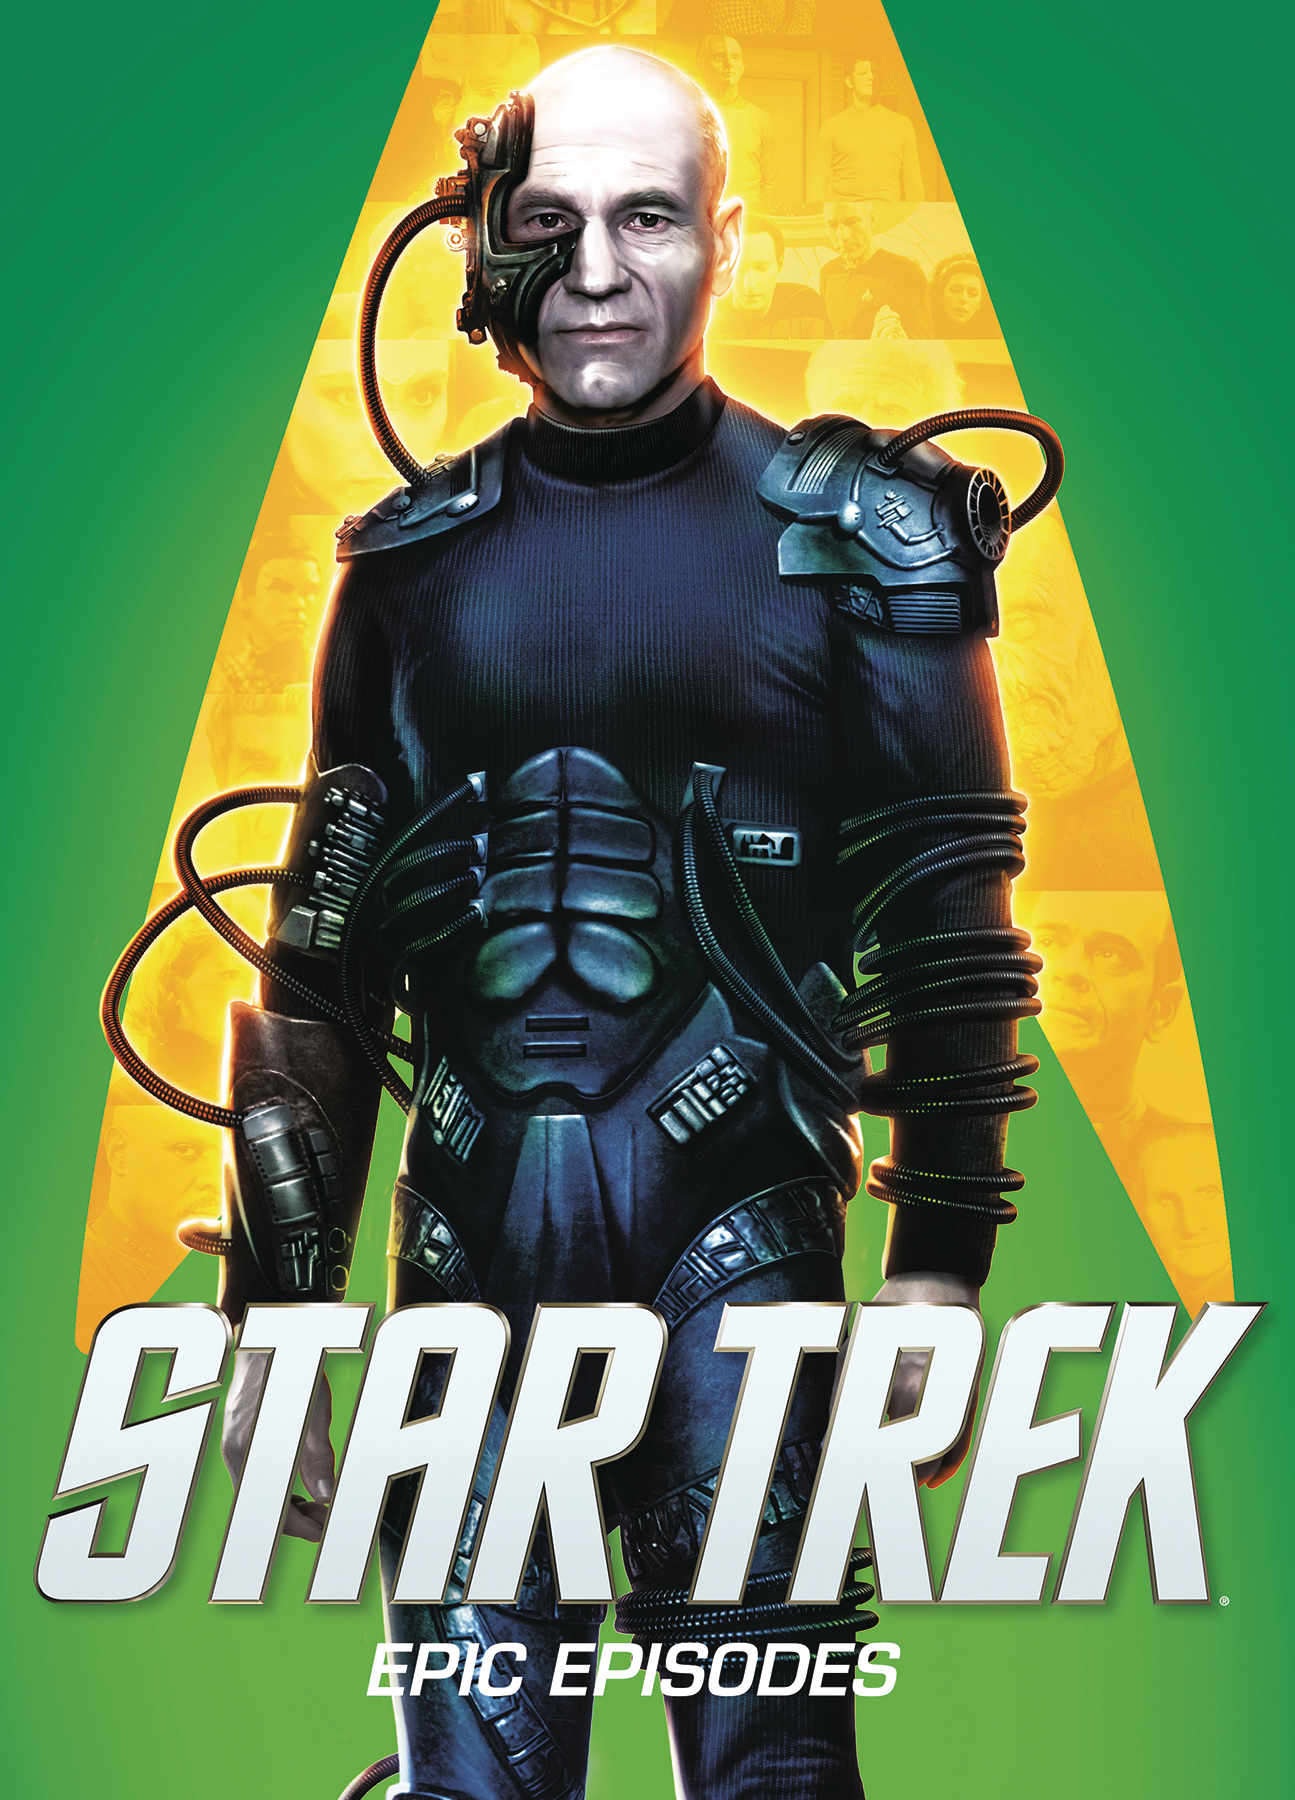 STARK TREK EPIC EPISODES VOL 4